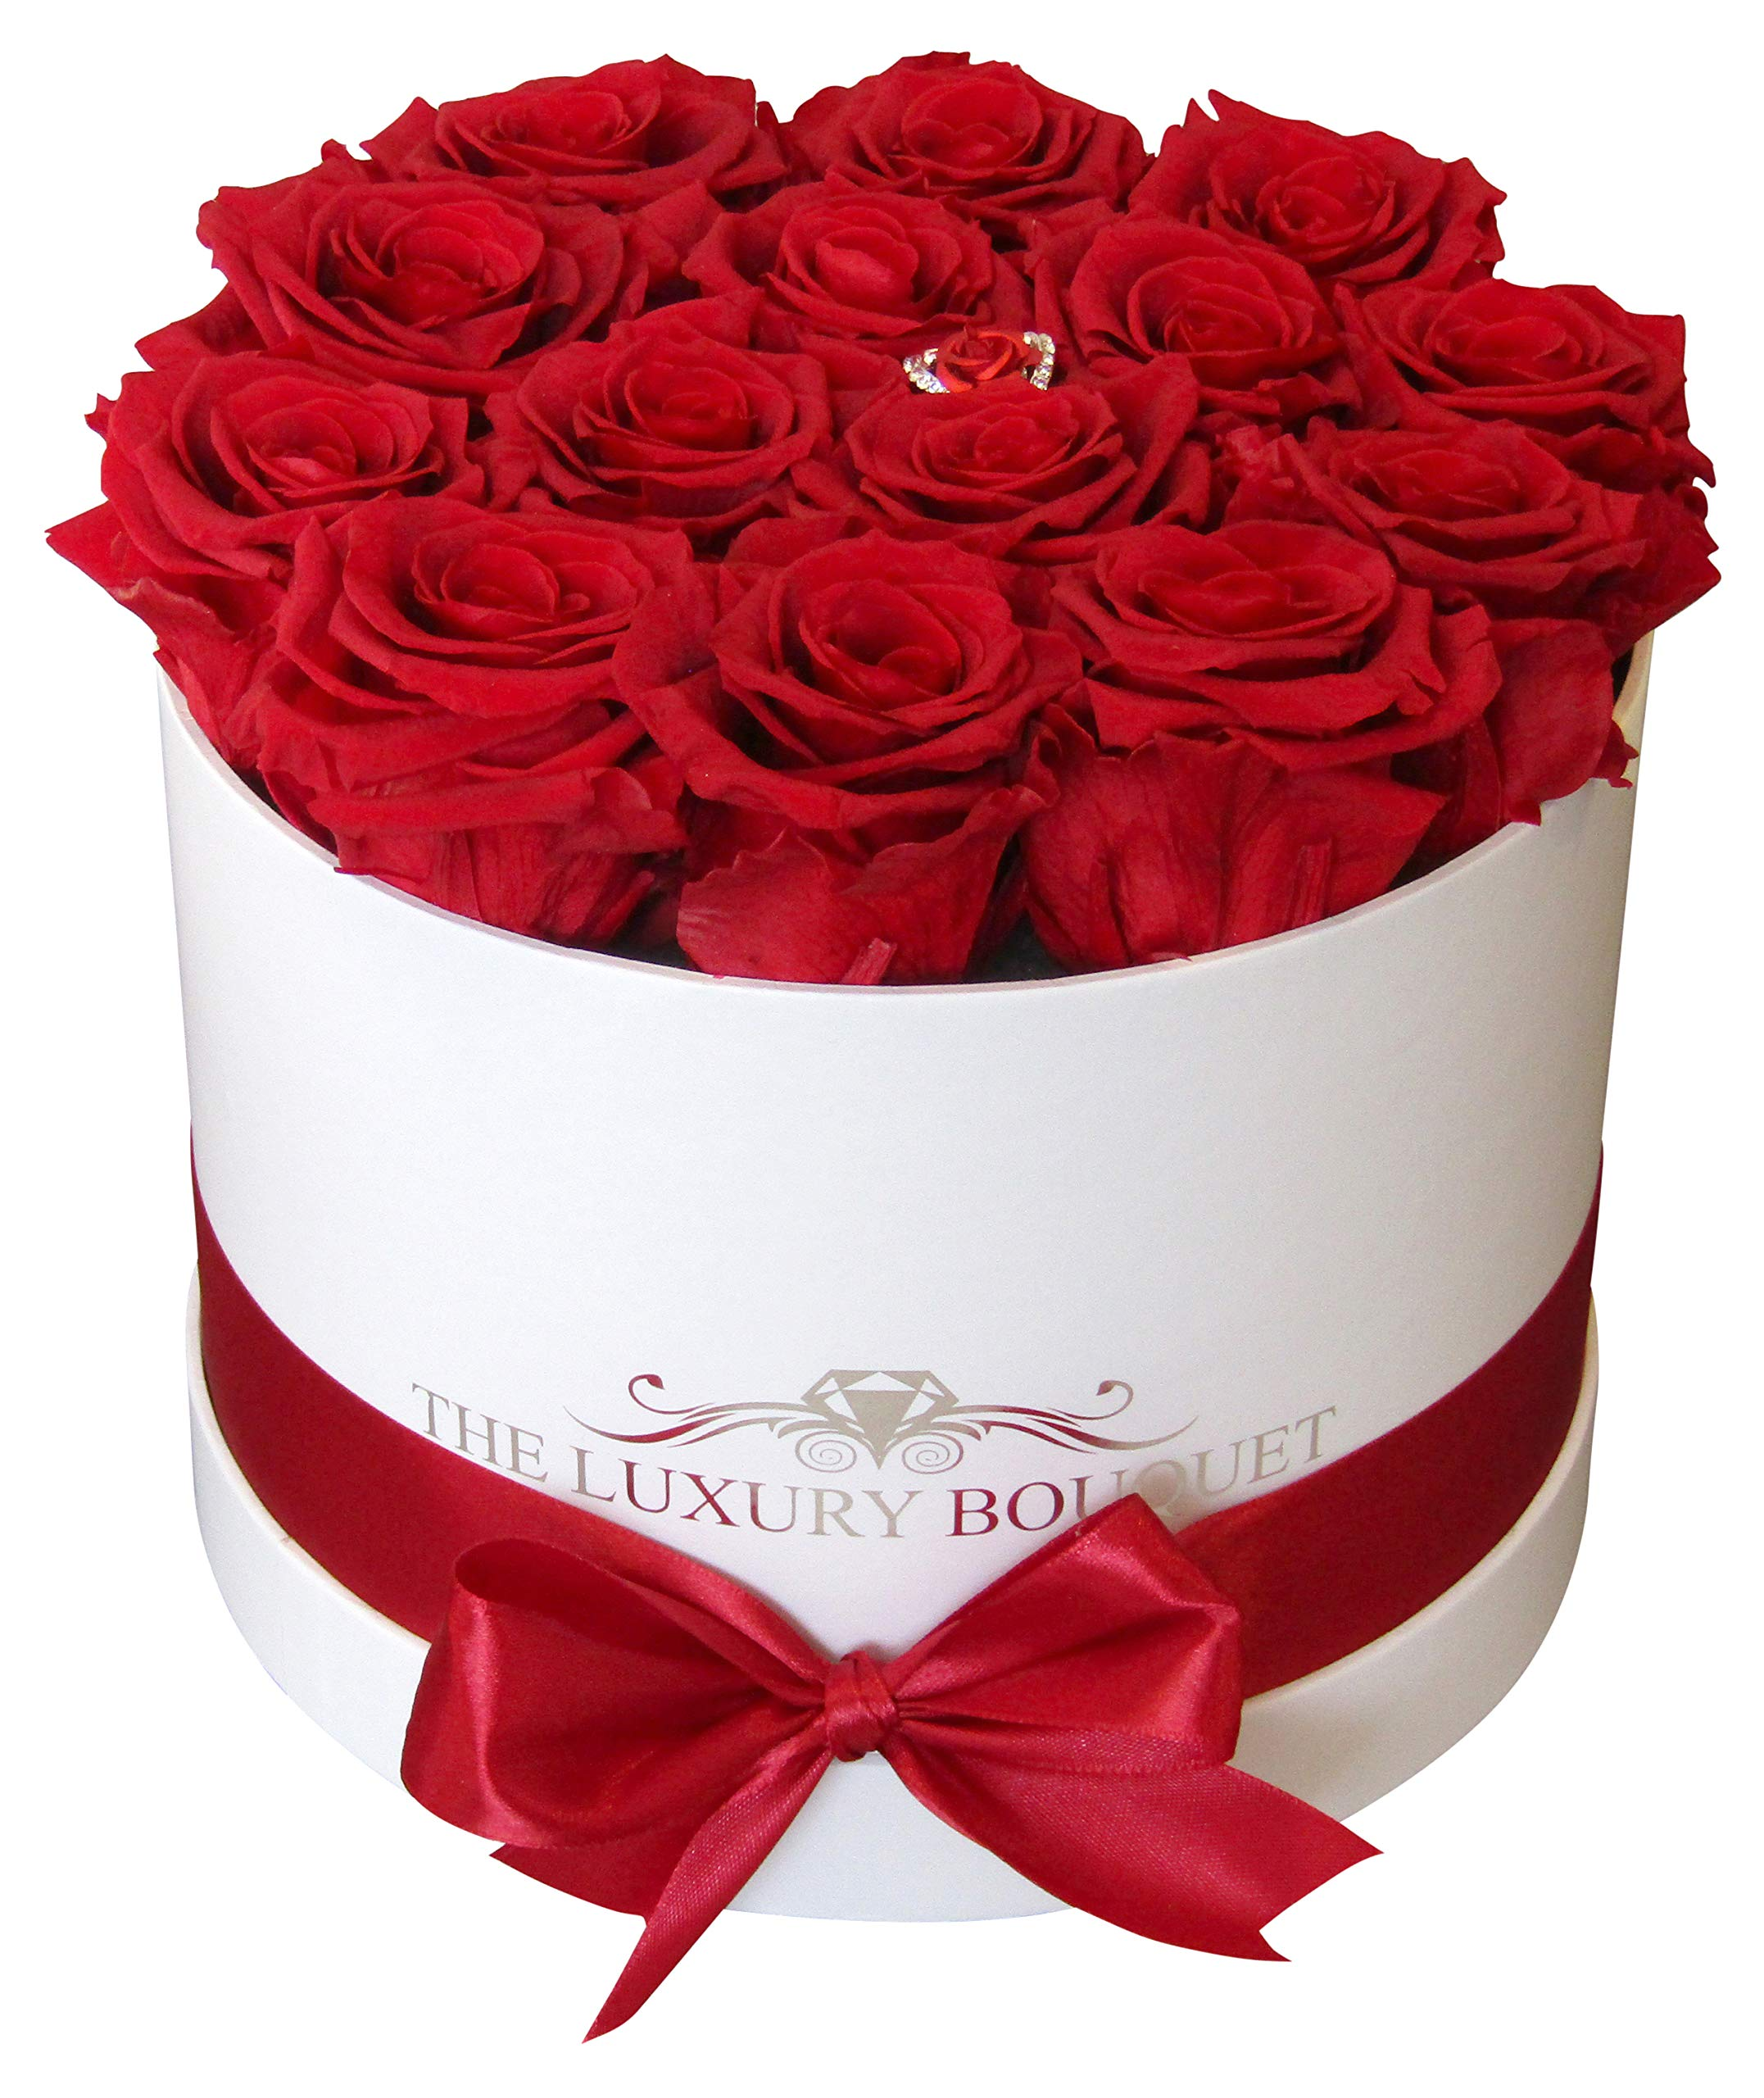 Preserved Premium Quality Classic Red Roses/Real Roses in White Round 8-inch/Box/Long-Lasting Forever Eternal Roses/Last for a Year/No Water/Last Long Forever Rose Bouquet by The Luxury Bouquet